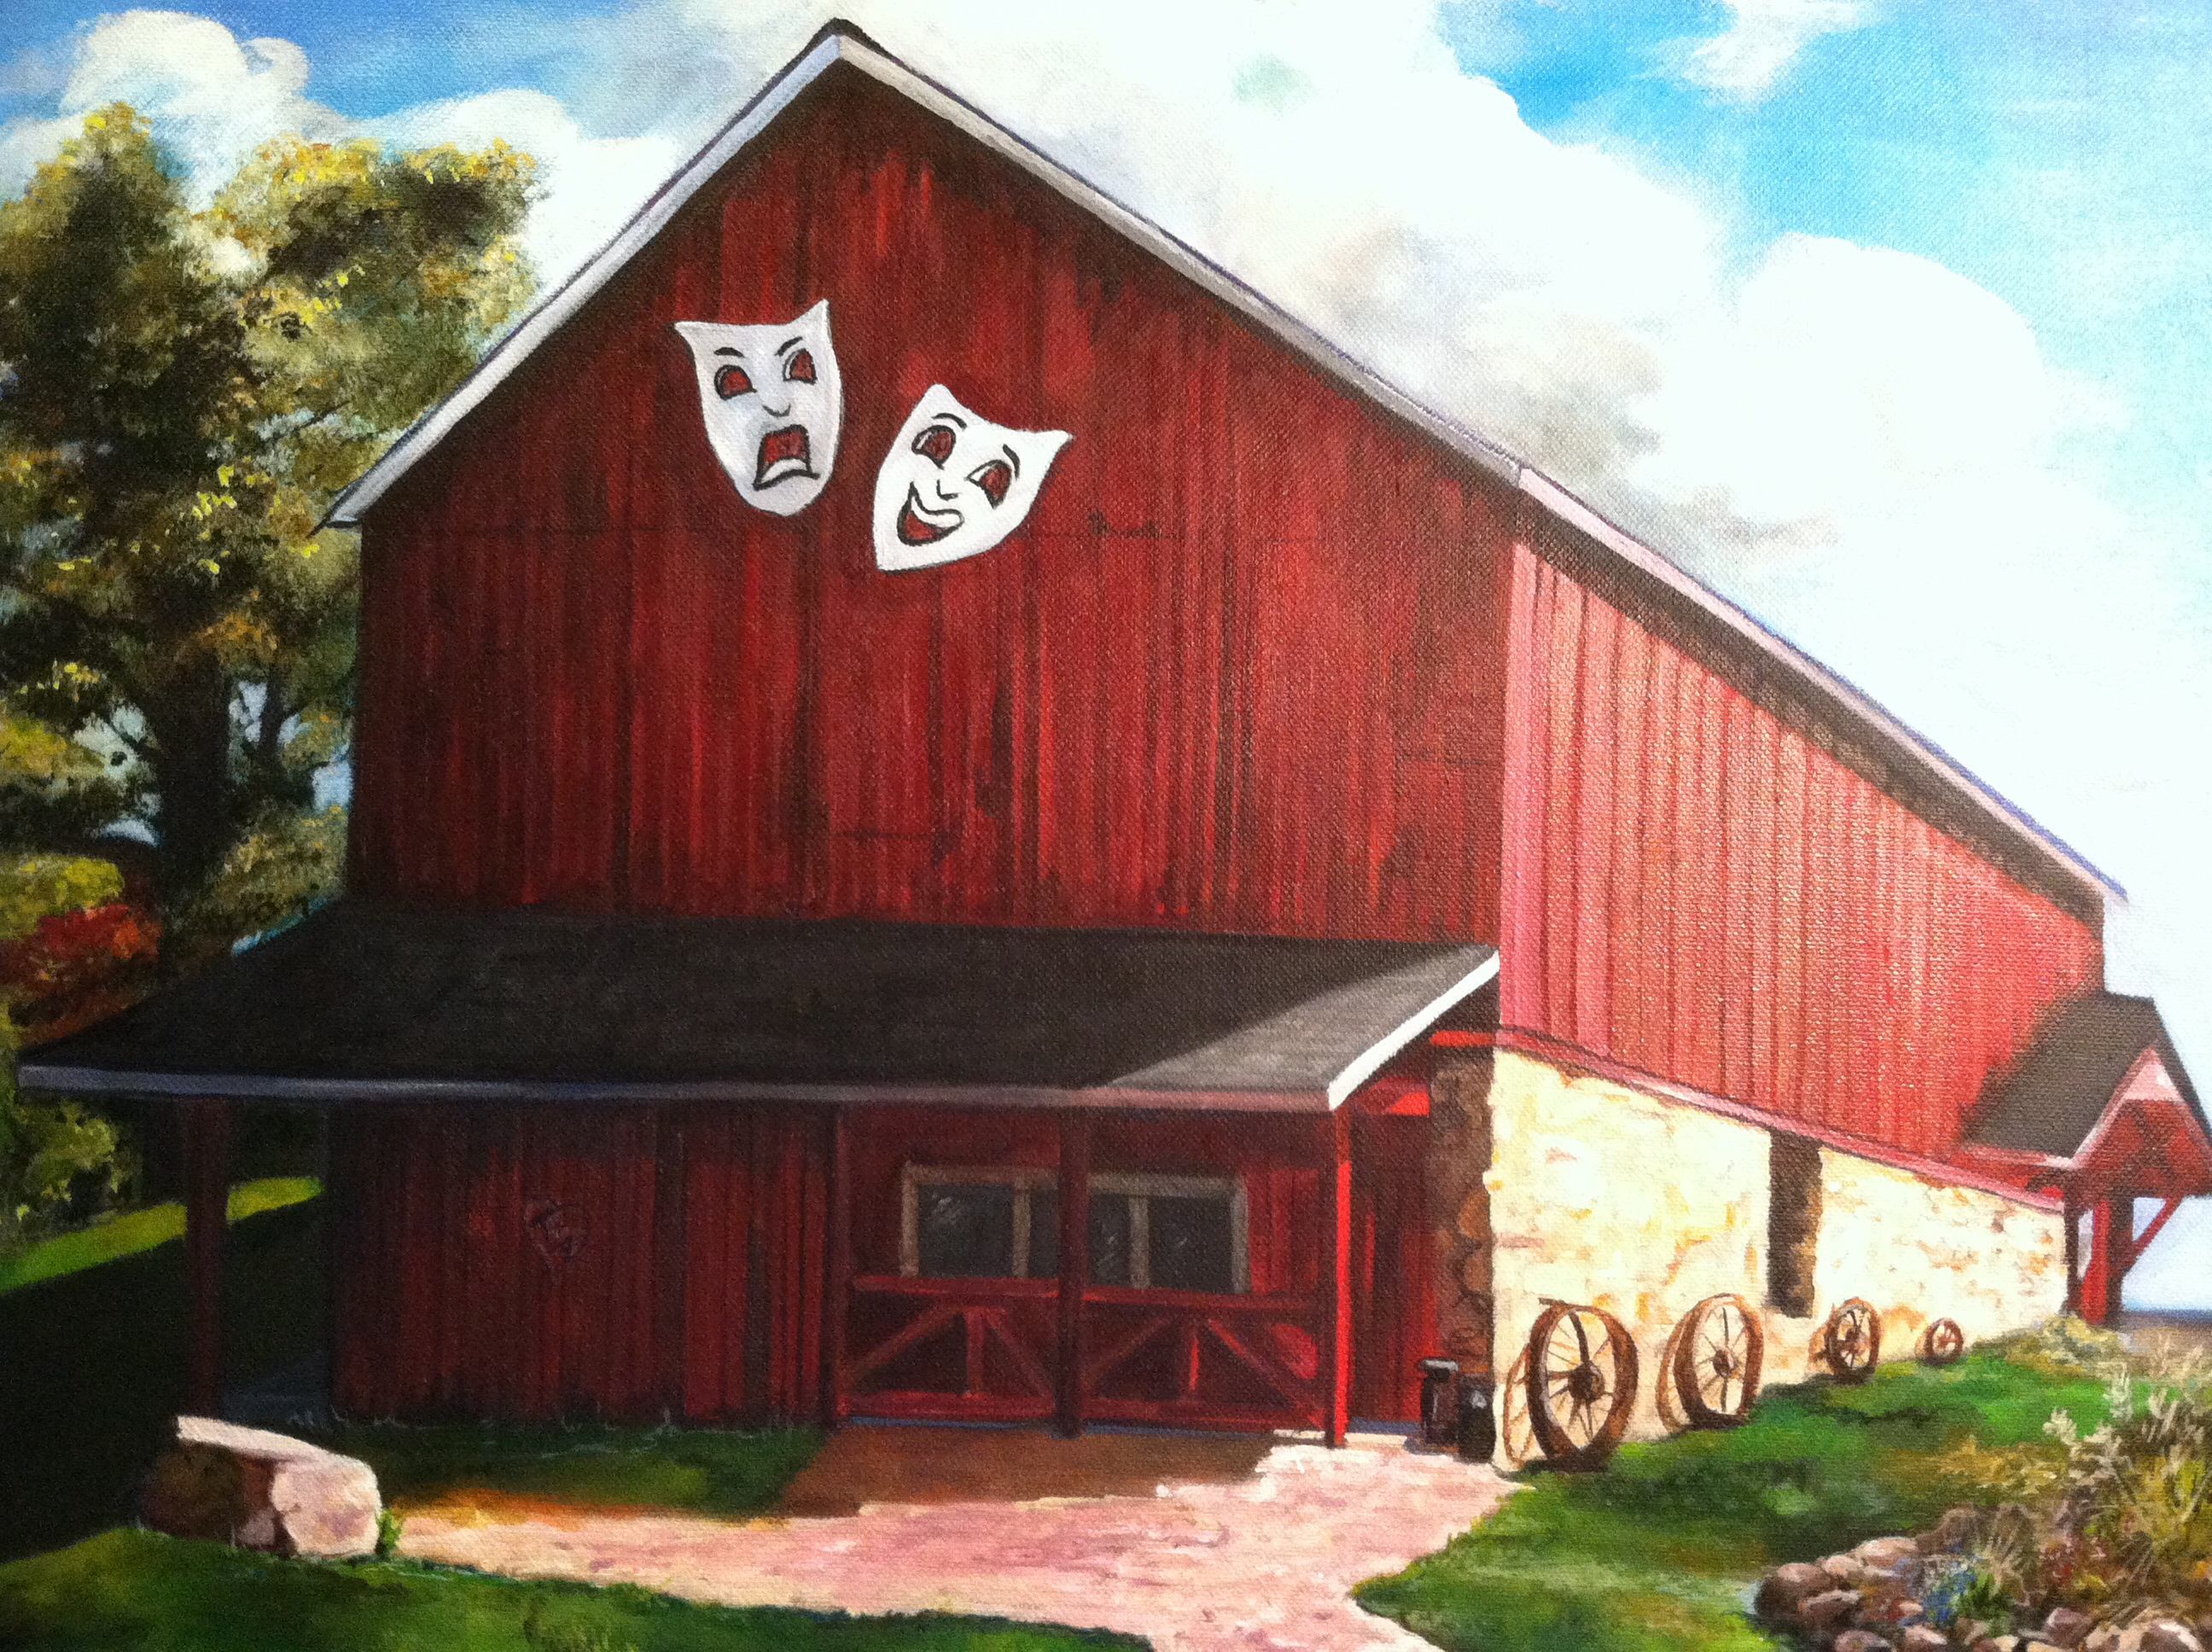 The Red Barn Theatre